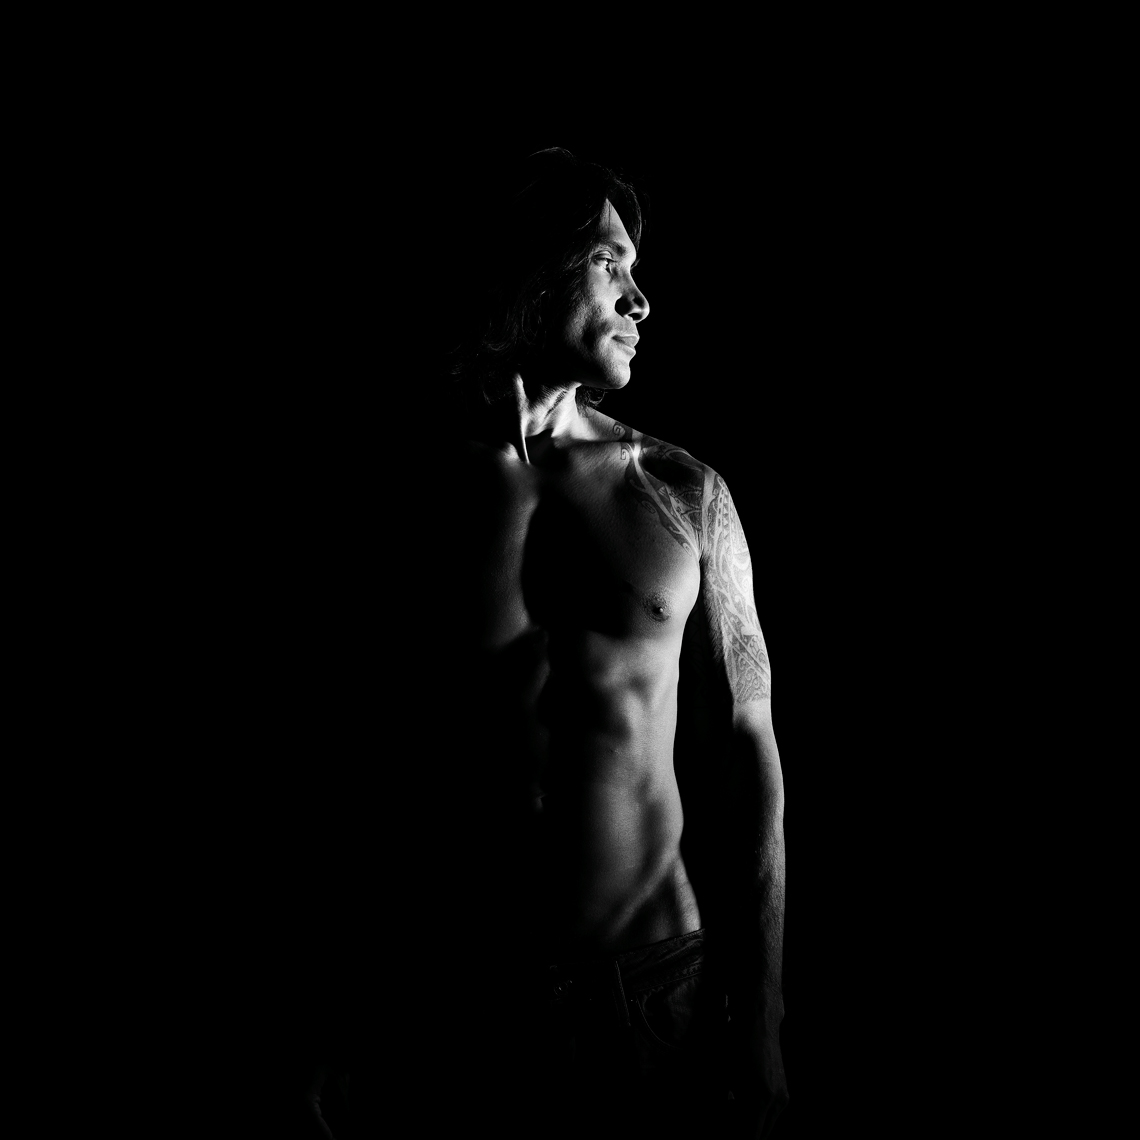 shirtless Fit Asian Man with tattoos_black and white portrait